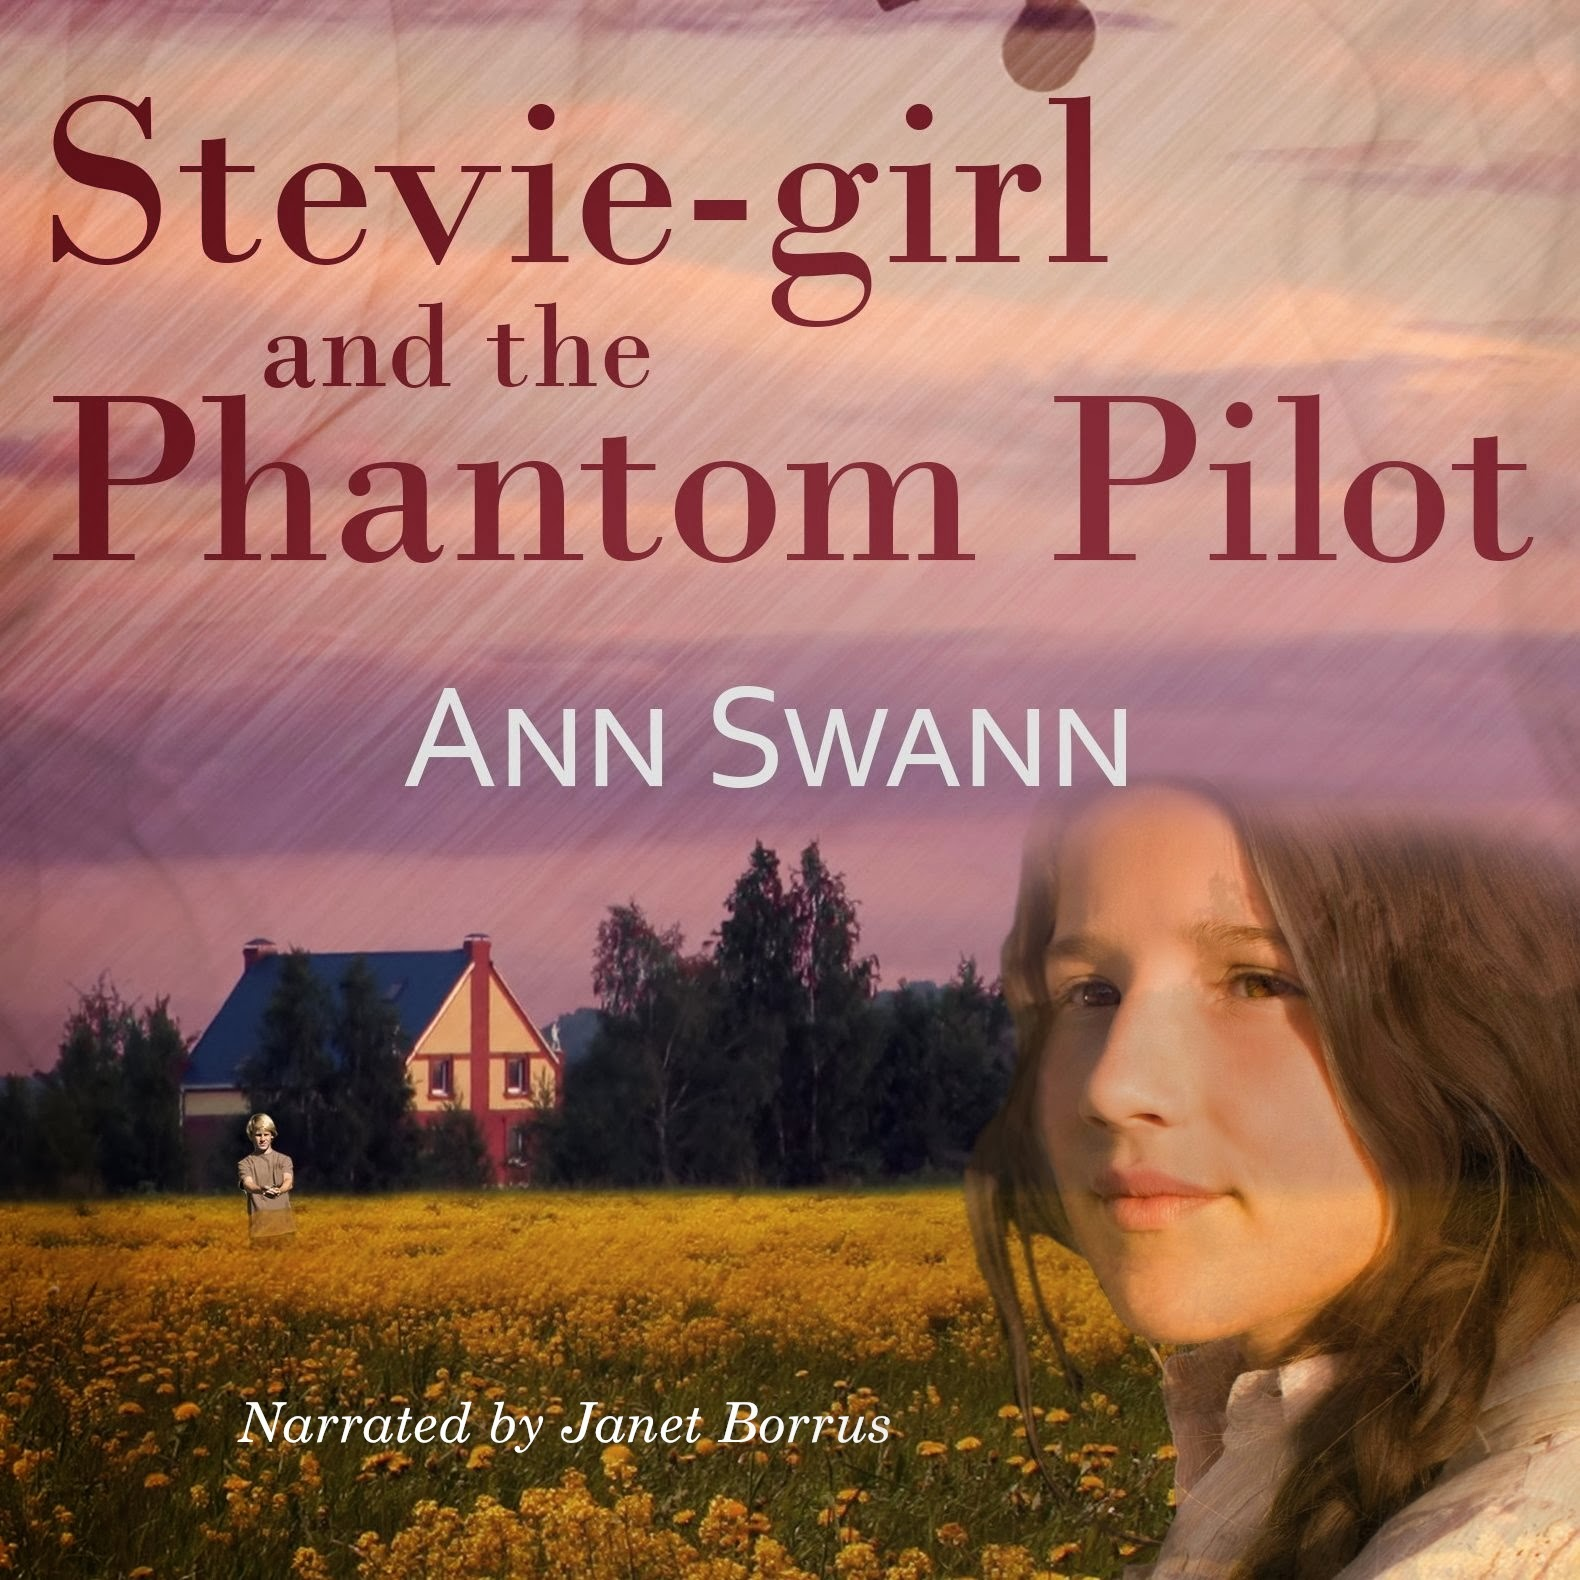 Stevie-girl and the Phantom Pilot